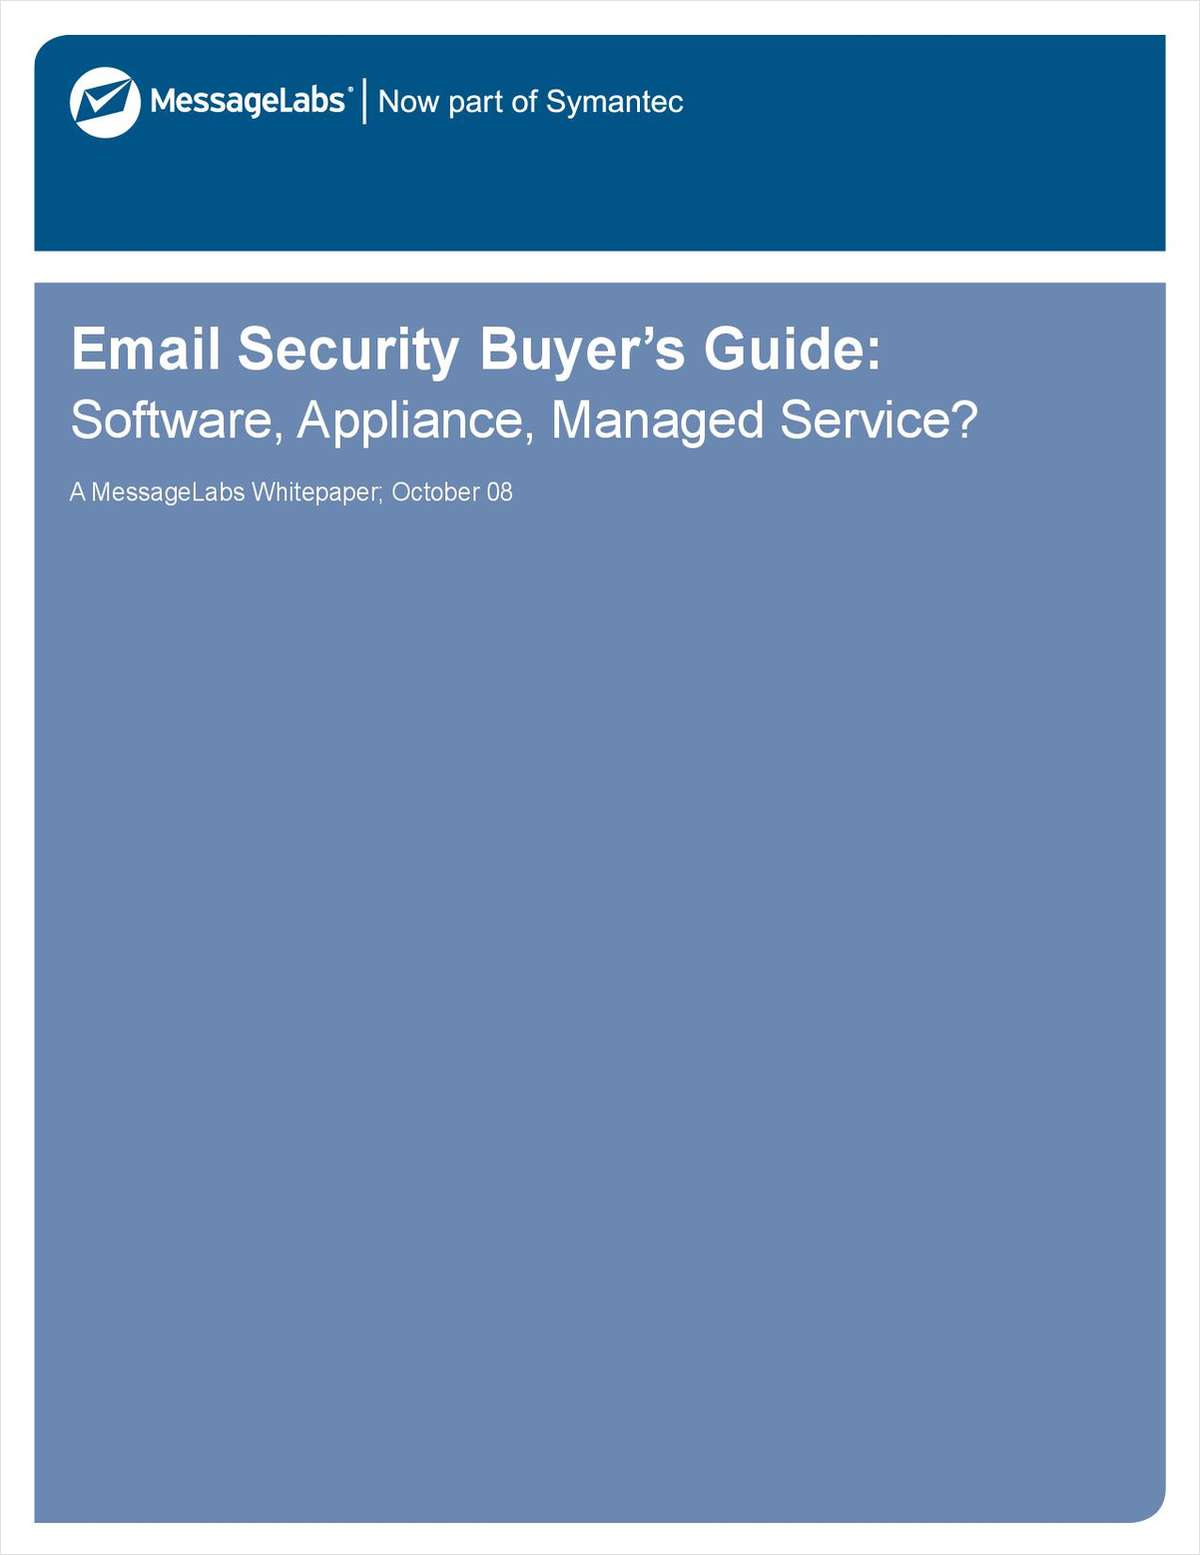 Email Security Buyer's Guide